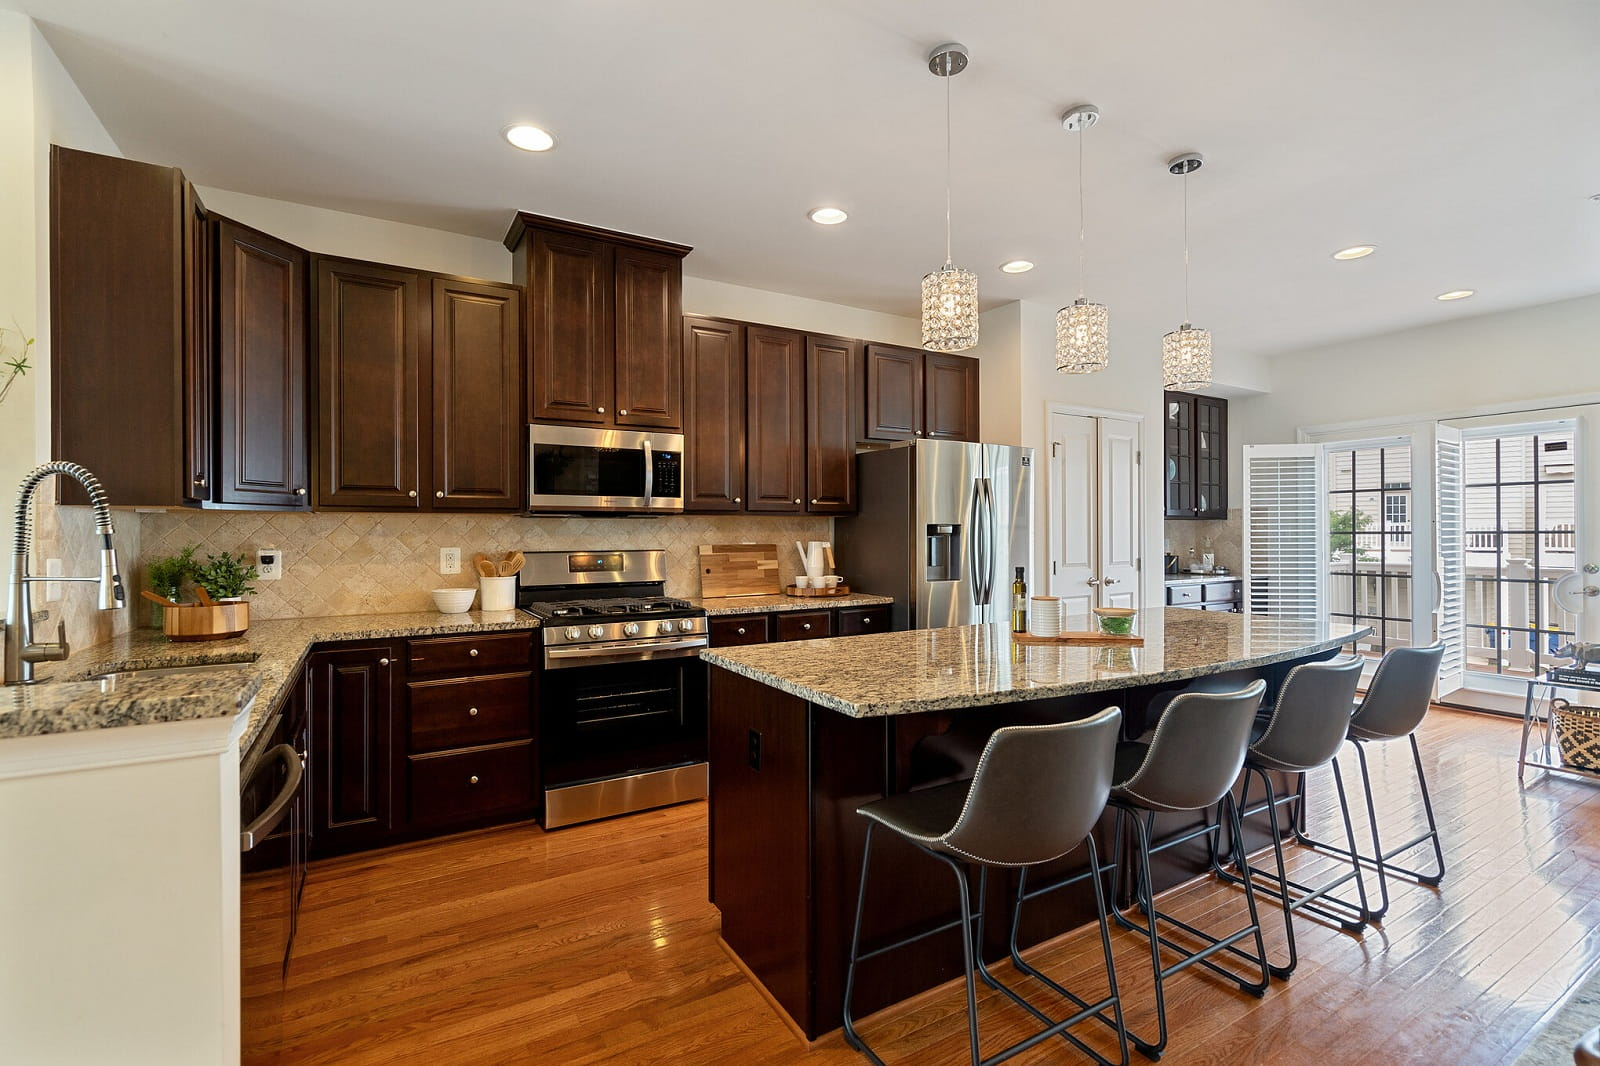 Real Estate Photography in Washington D.C - Kitchen View